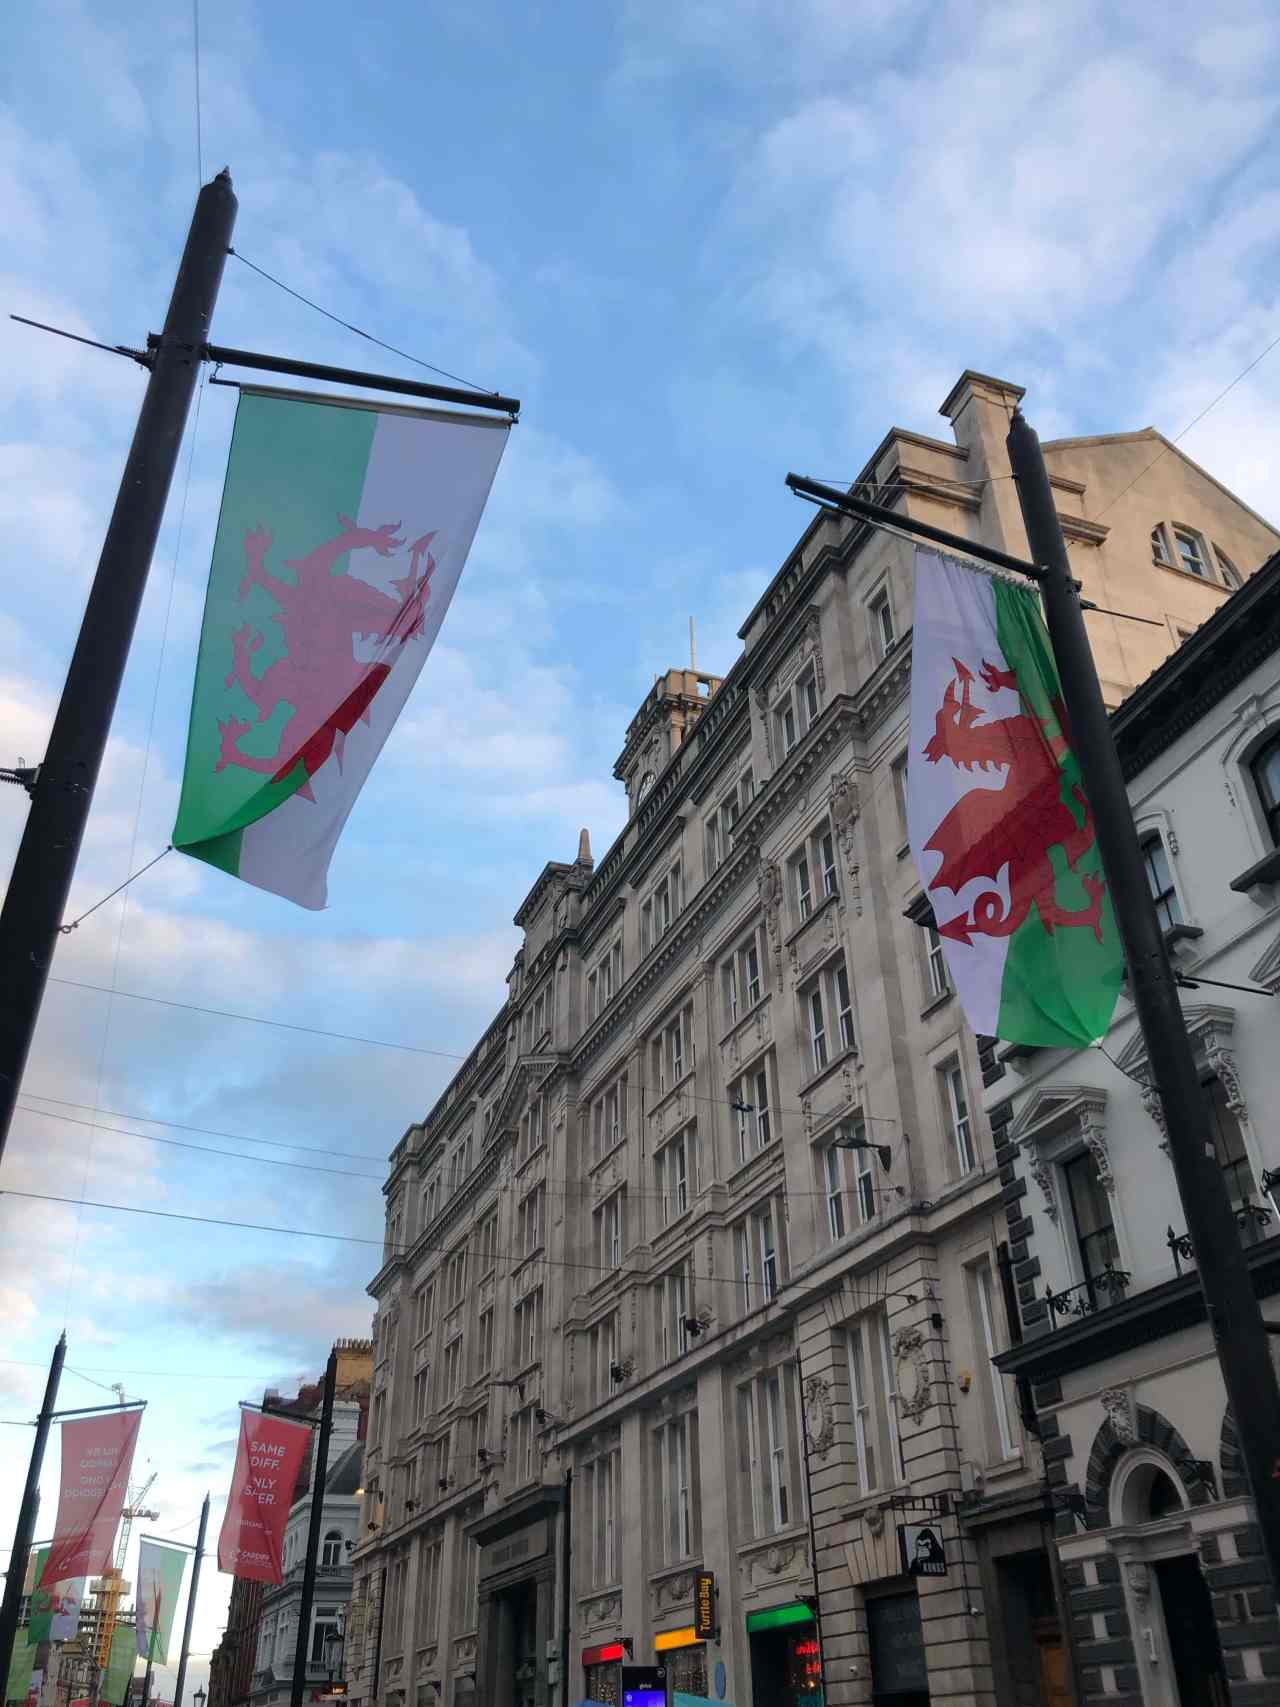 Welsh dragons on Cardiff high street